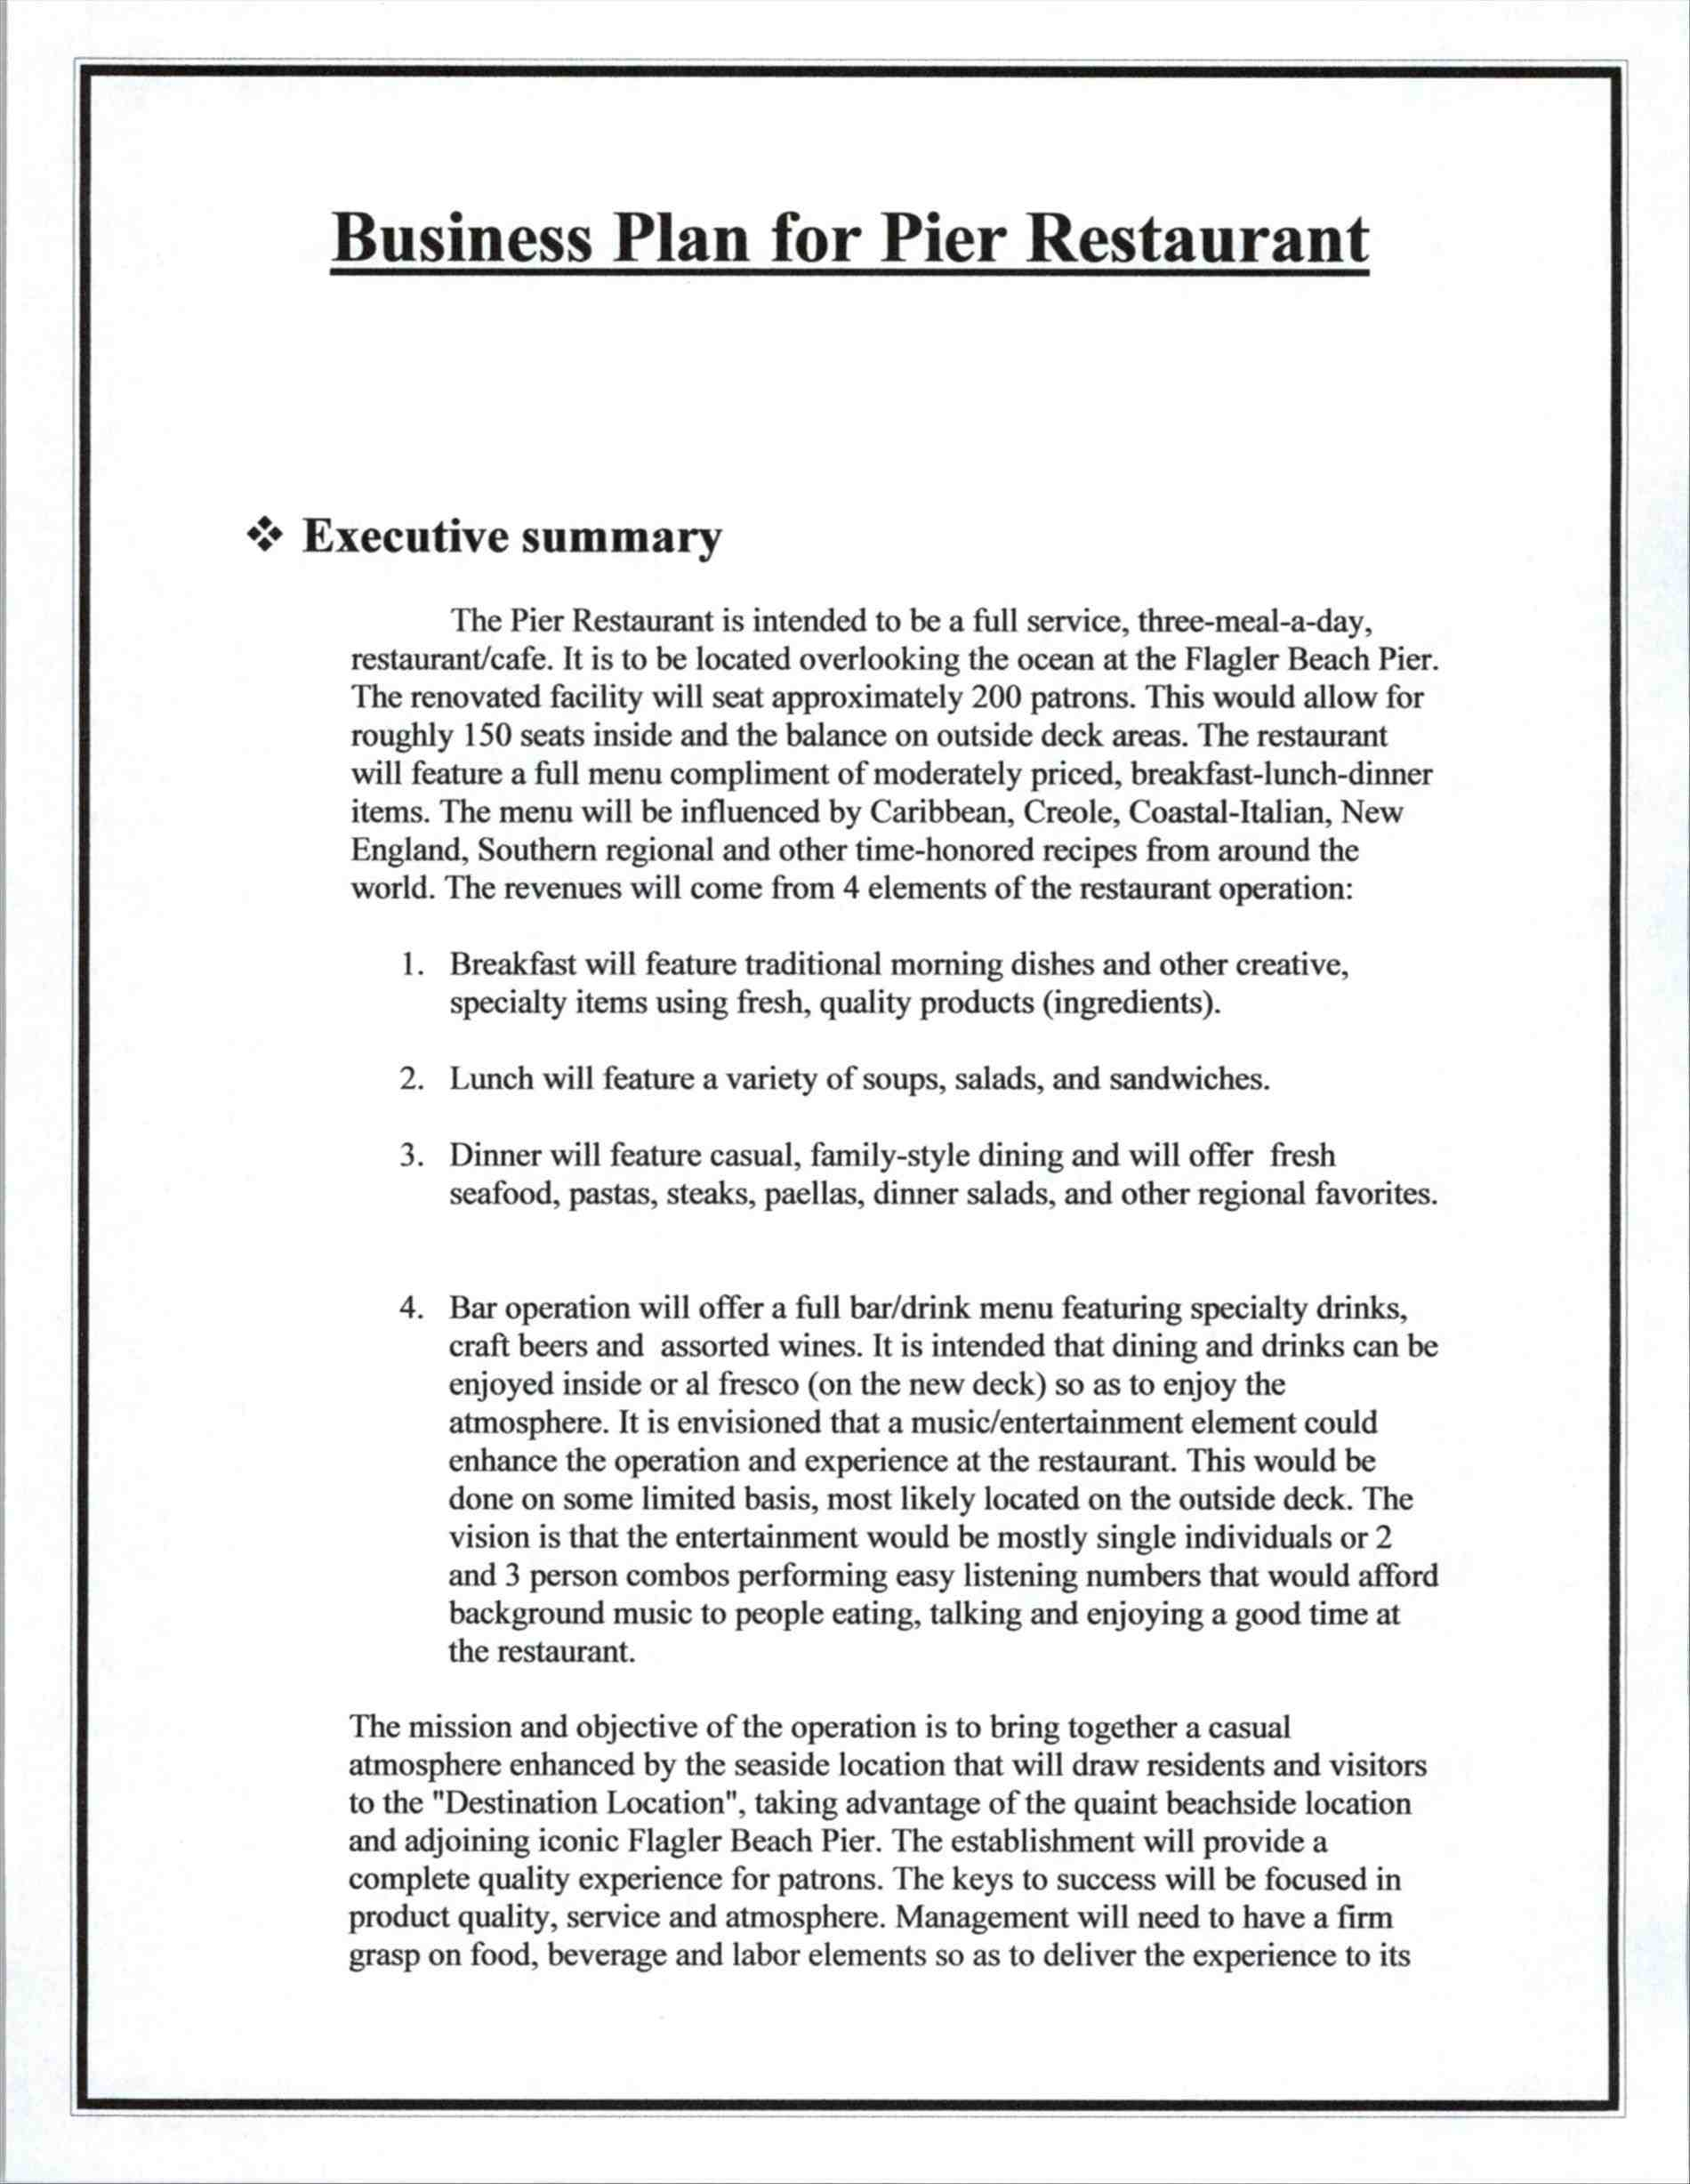 agreement templatesrhmybissimcom fresh Top 5 Resources To Get Free Fax Word Templates free rental agreement template best templatesrhmybissimcom top resources